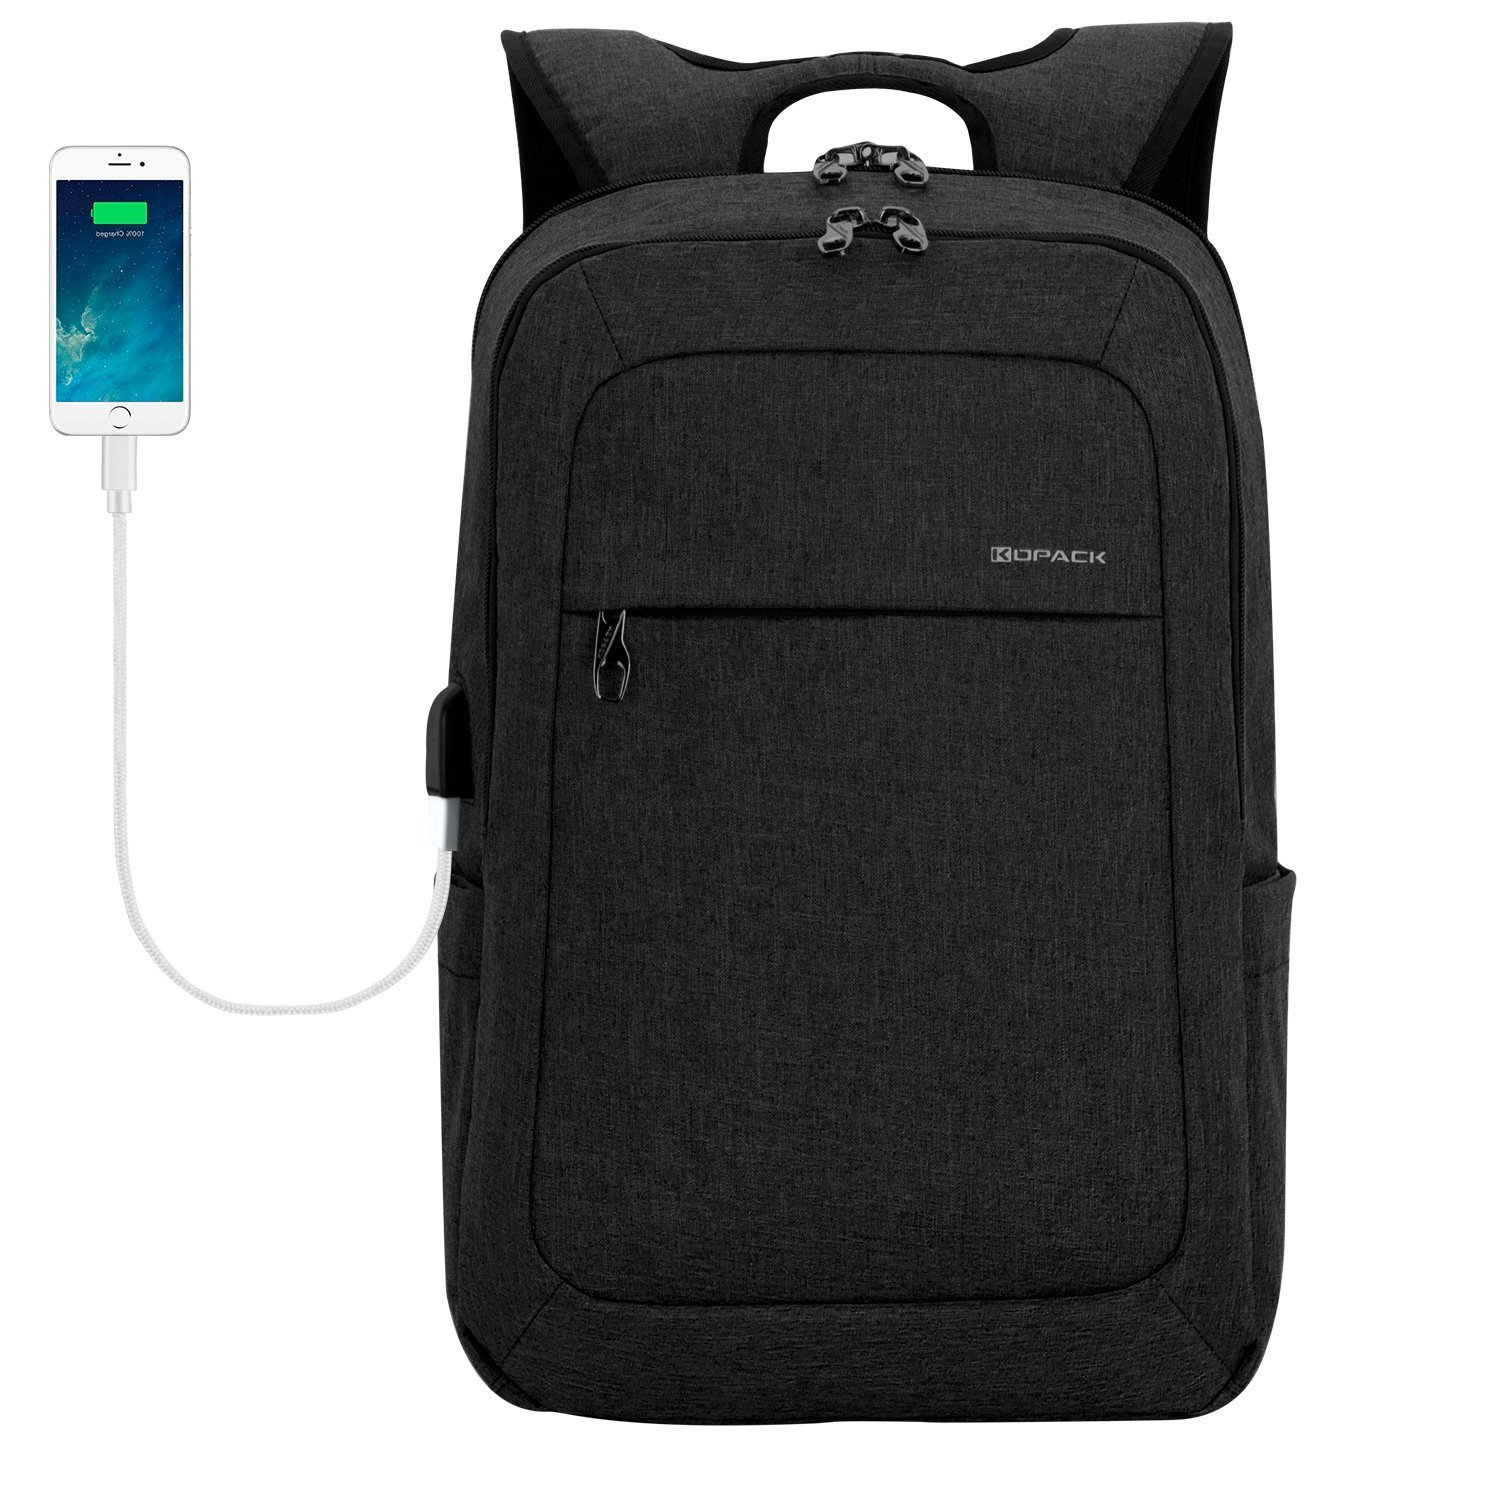 KOPACK Lightweight Laptop Backpack USB Water Resistant 15.6 Inch Business Slim Back Pack Charging Travel Bag by kopack